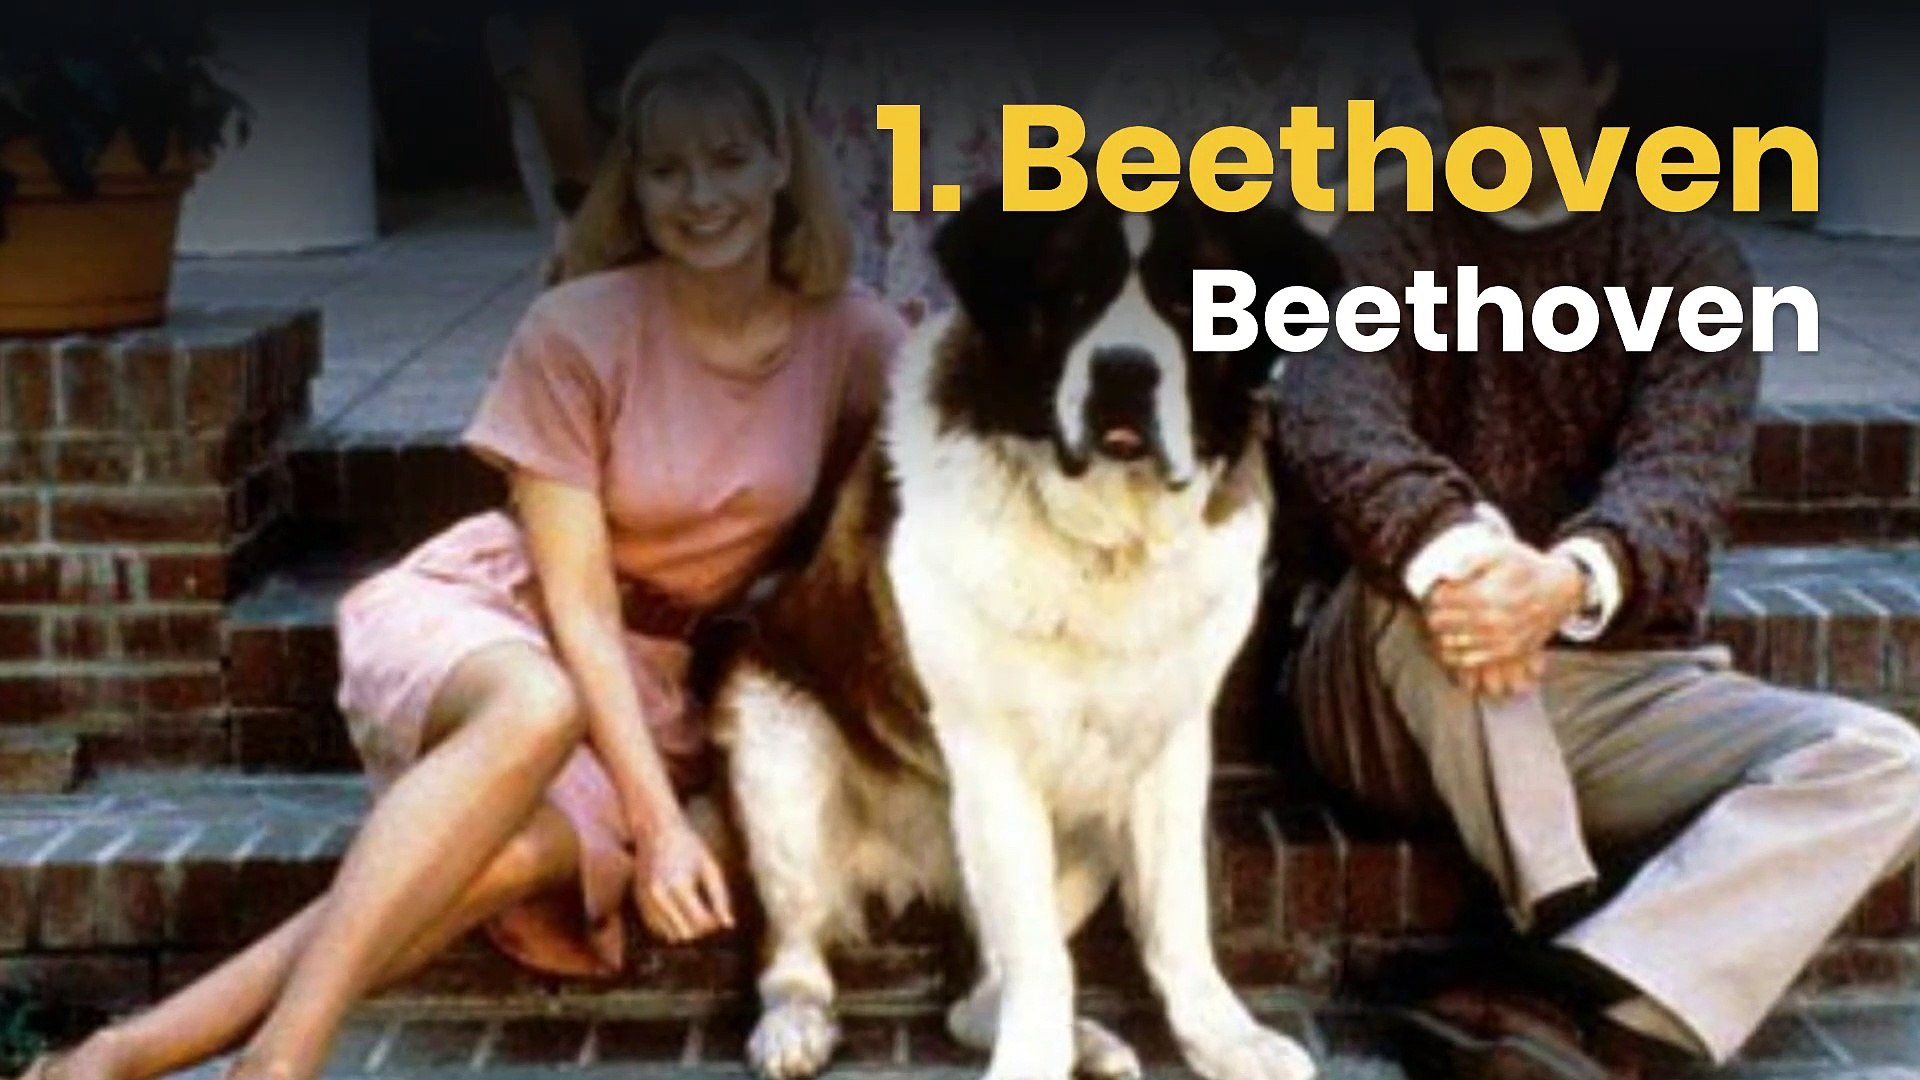 10 famous dogs in movies and TV